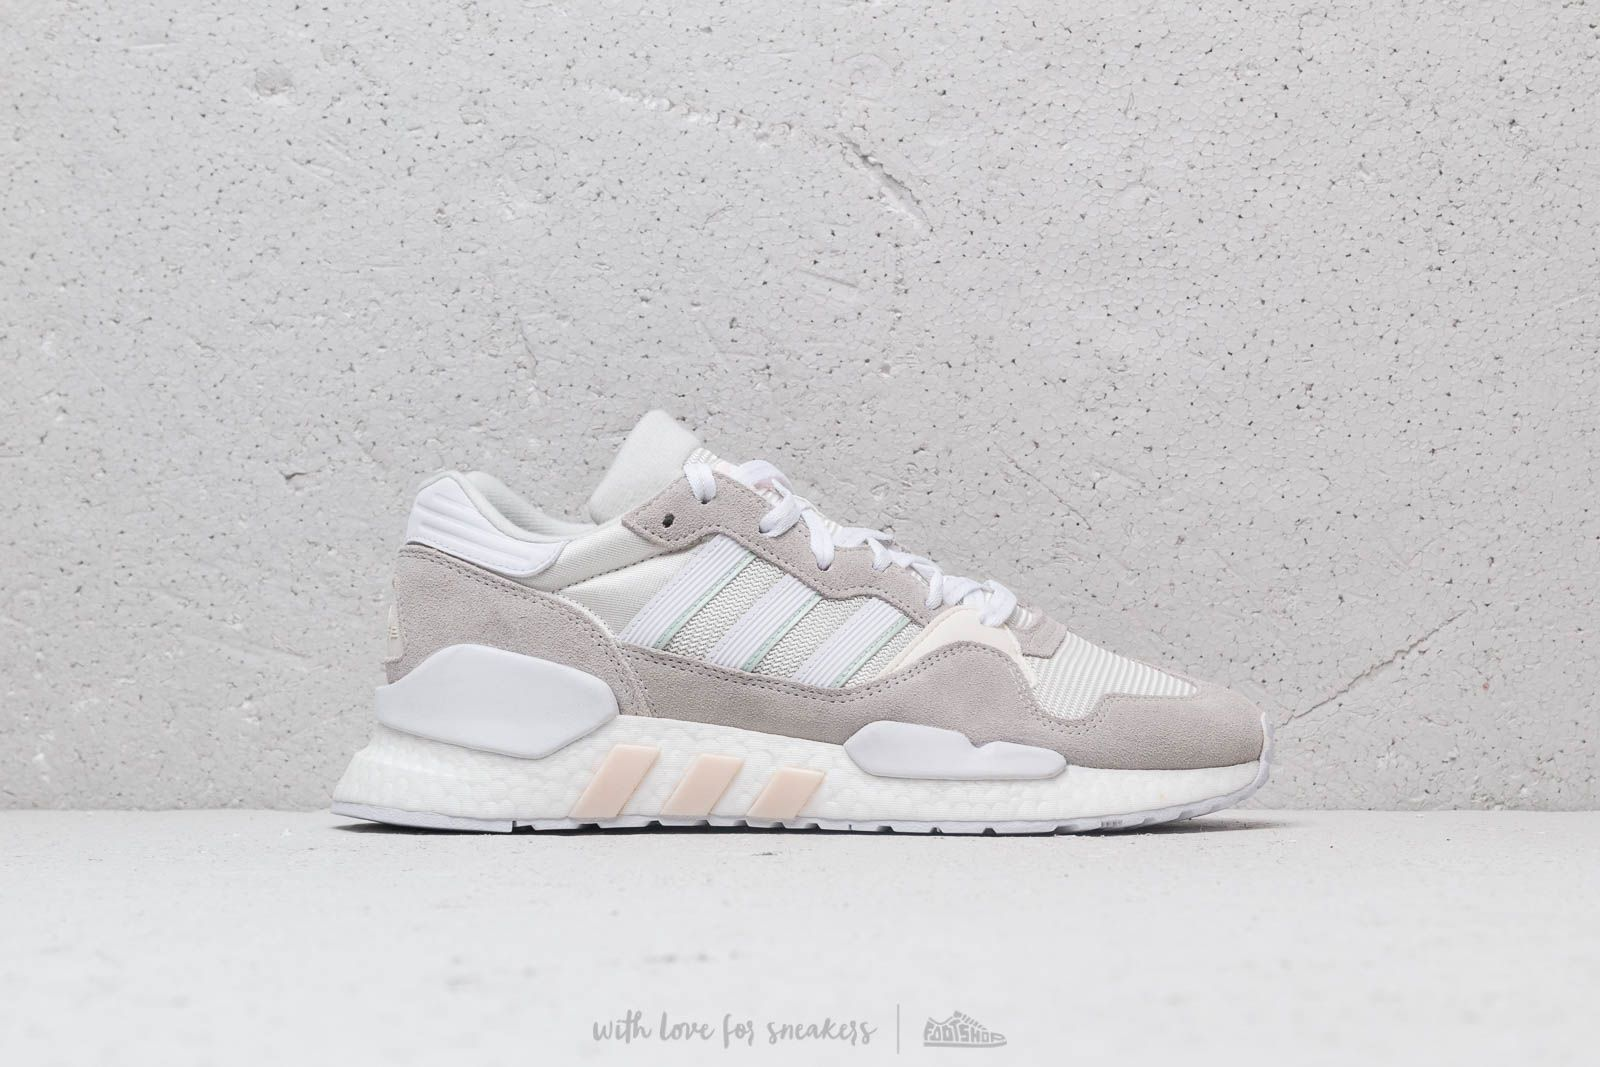 on sale 720e4 5eacf adidas ZX930 x EQT Cloud WHite/ Ftw White/ Grey One | Footshop